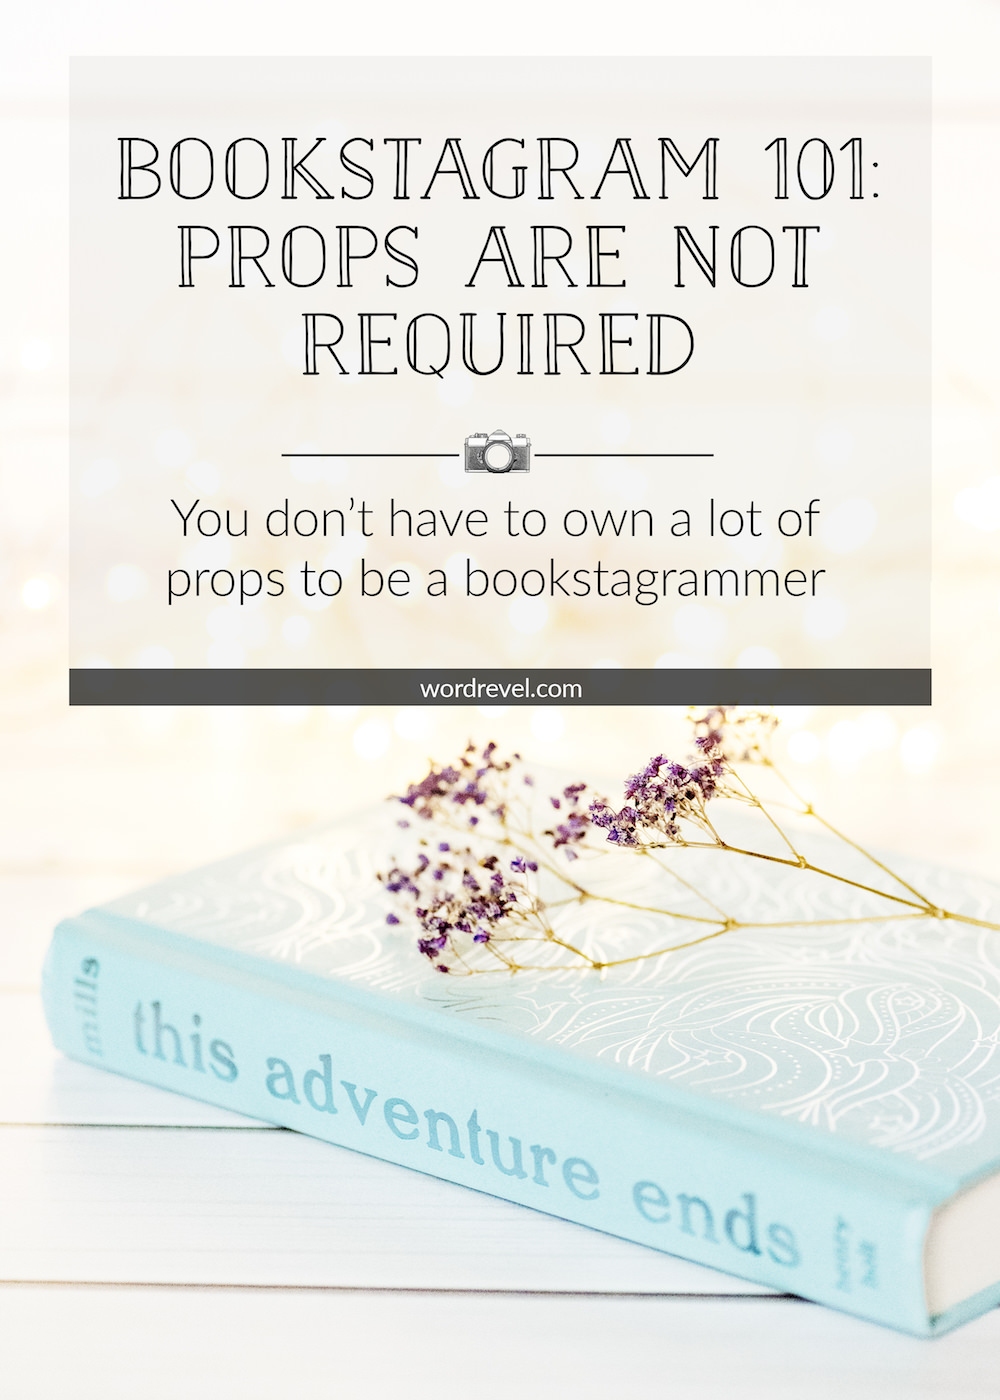 Bookstagram 101: Props Are Not Required — You don't have to own a lot of props to be a bookstagrammer